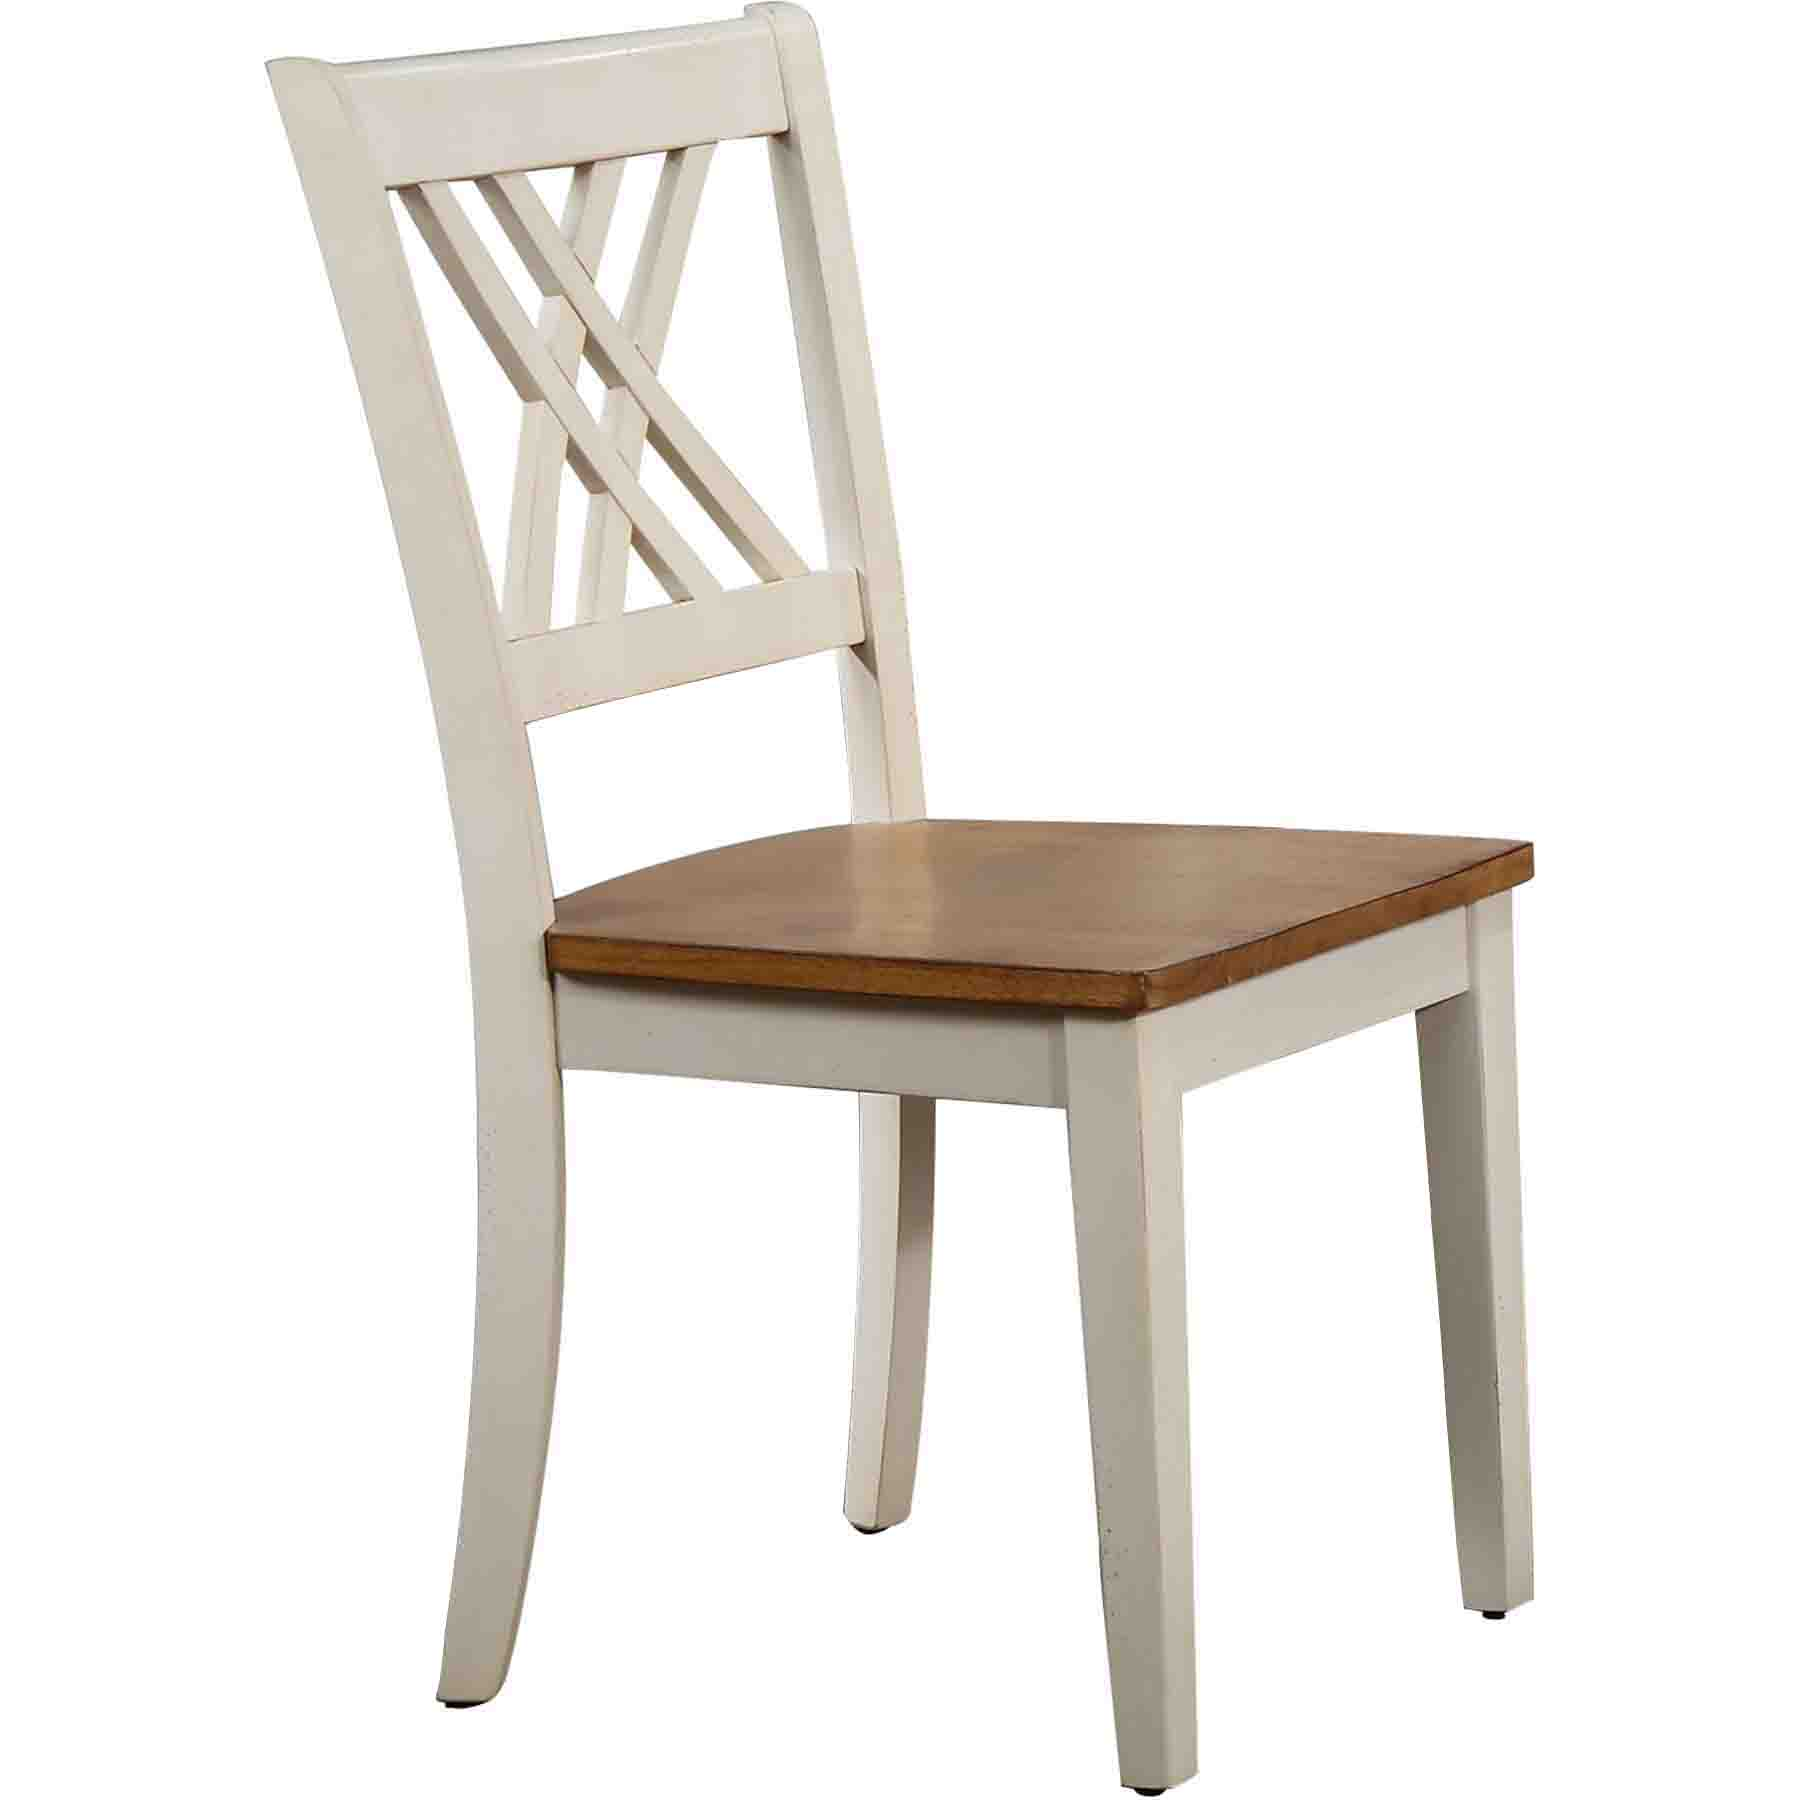 iconic furniture. Double X-Back Dining Chair - Caramel And Biscotti Iconic Furniture R